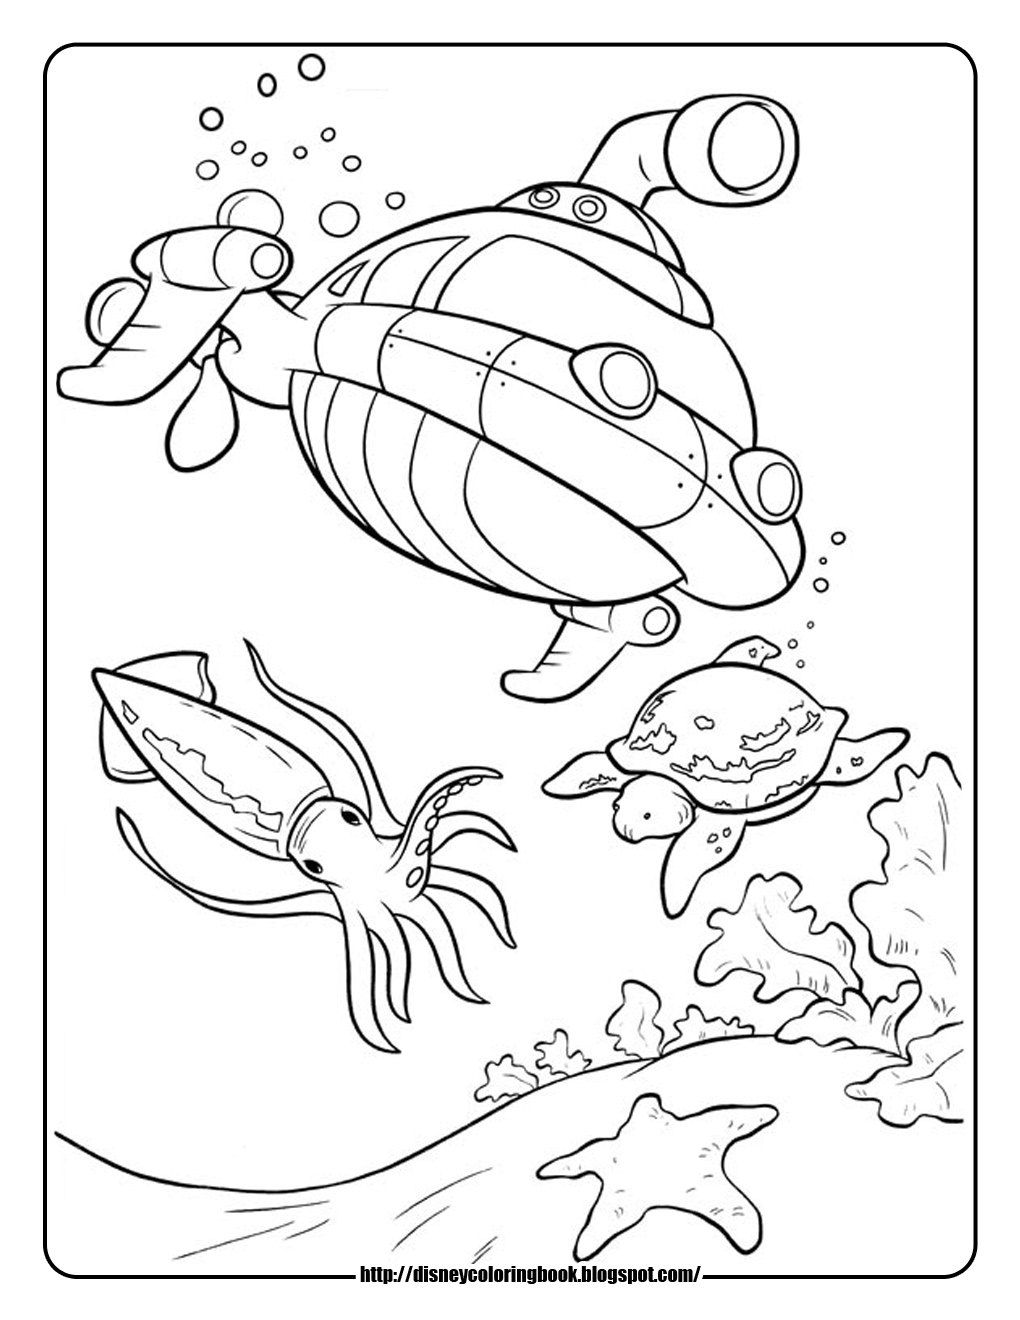 Disney Coloring Pages and Sheets for Kids Little Einsteins 2